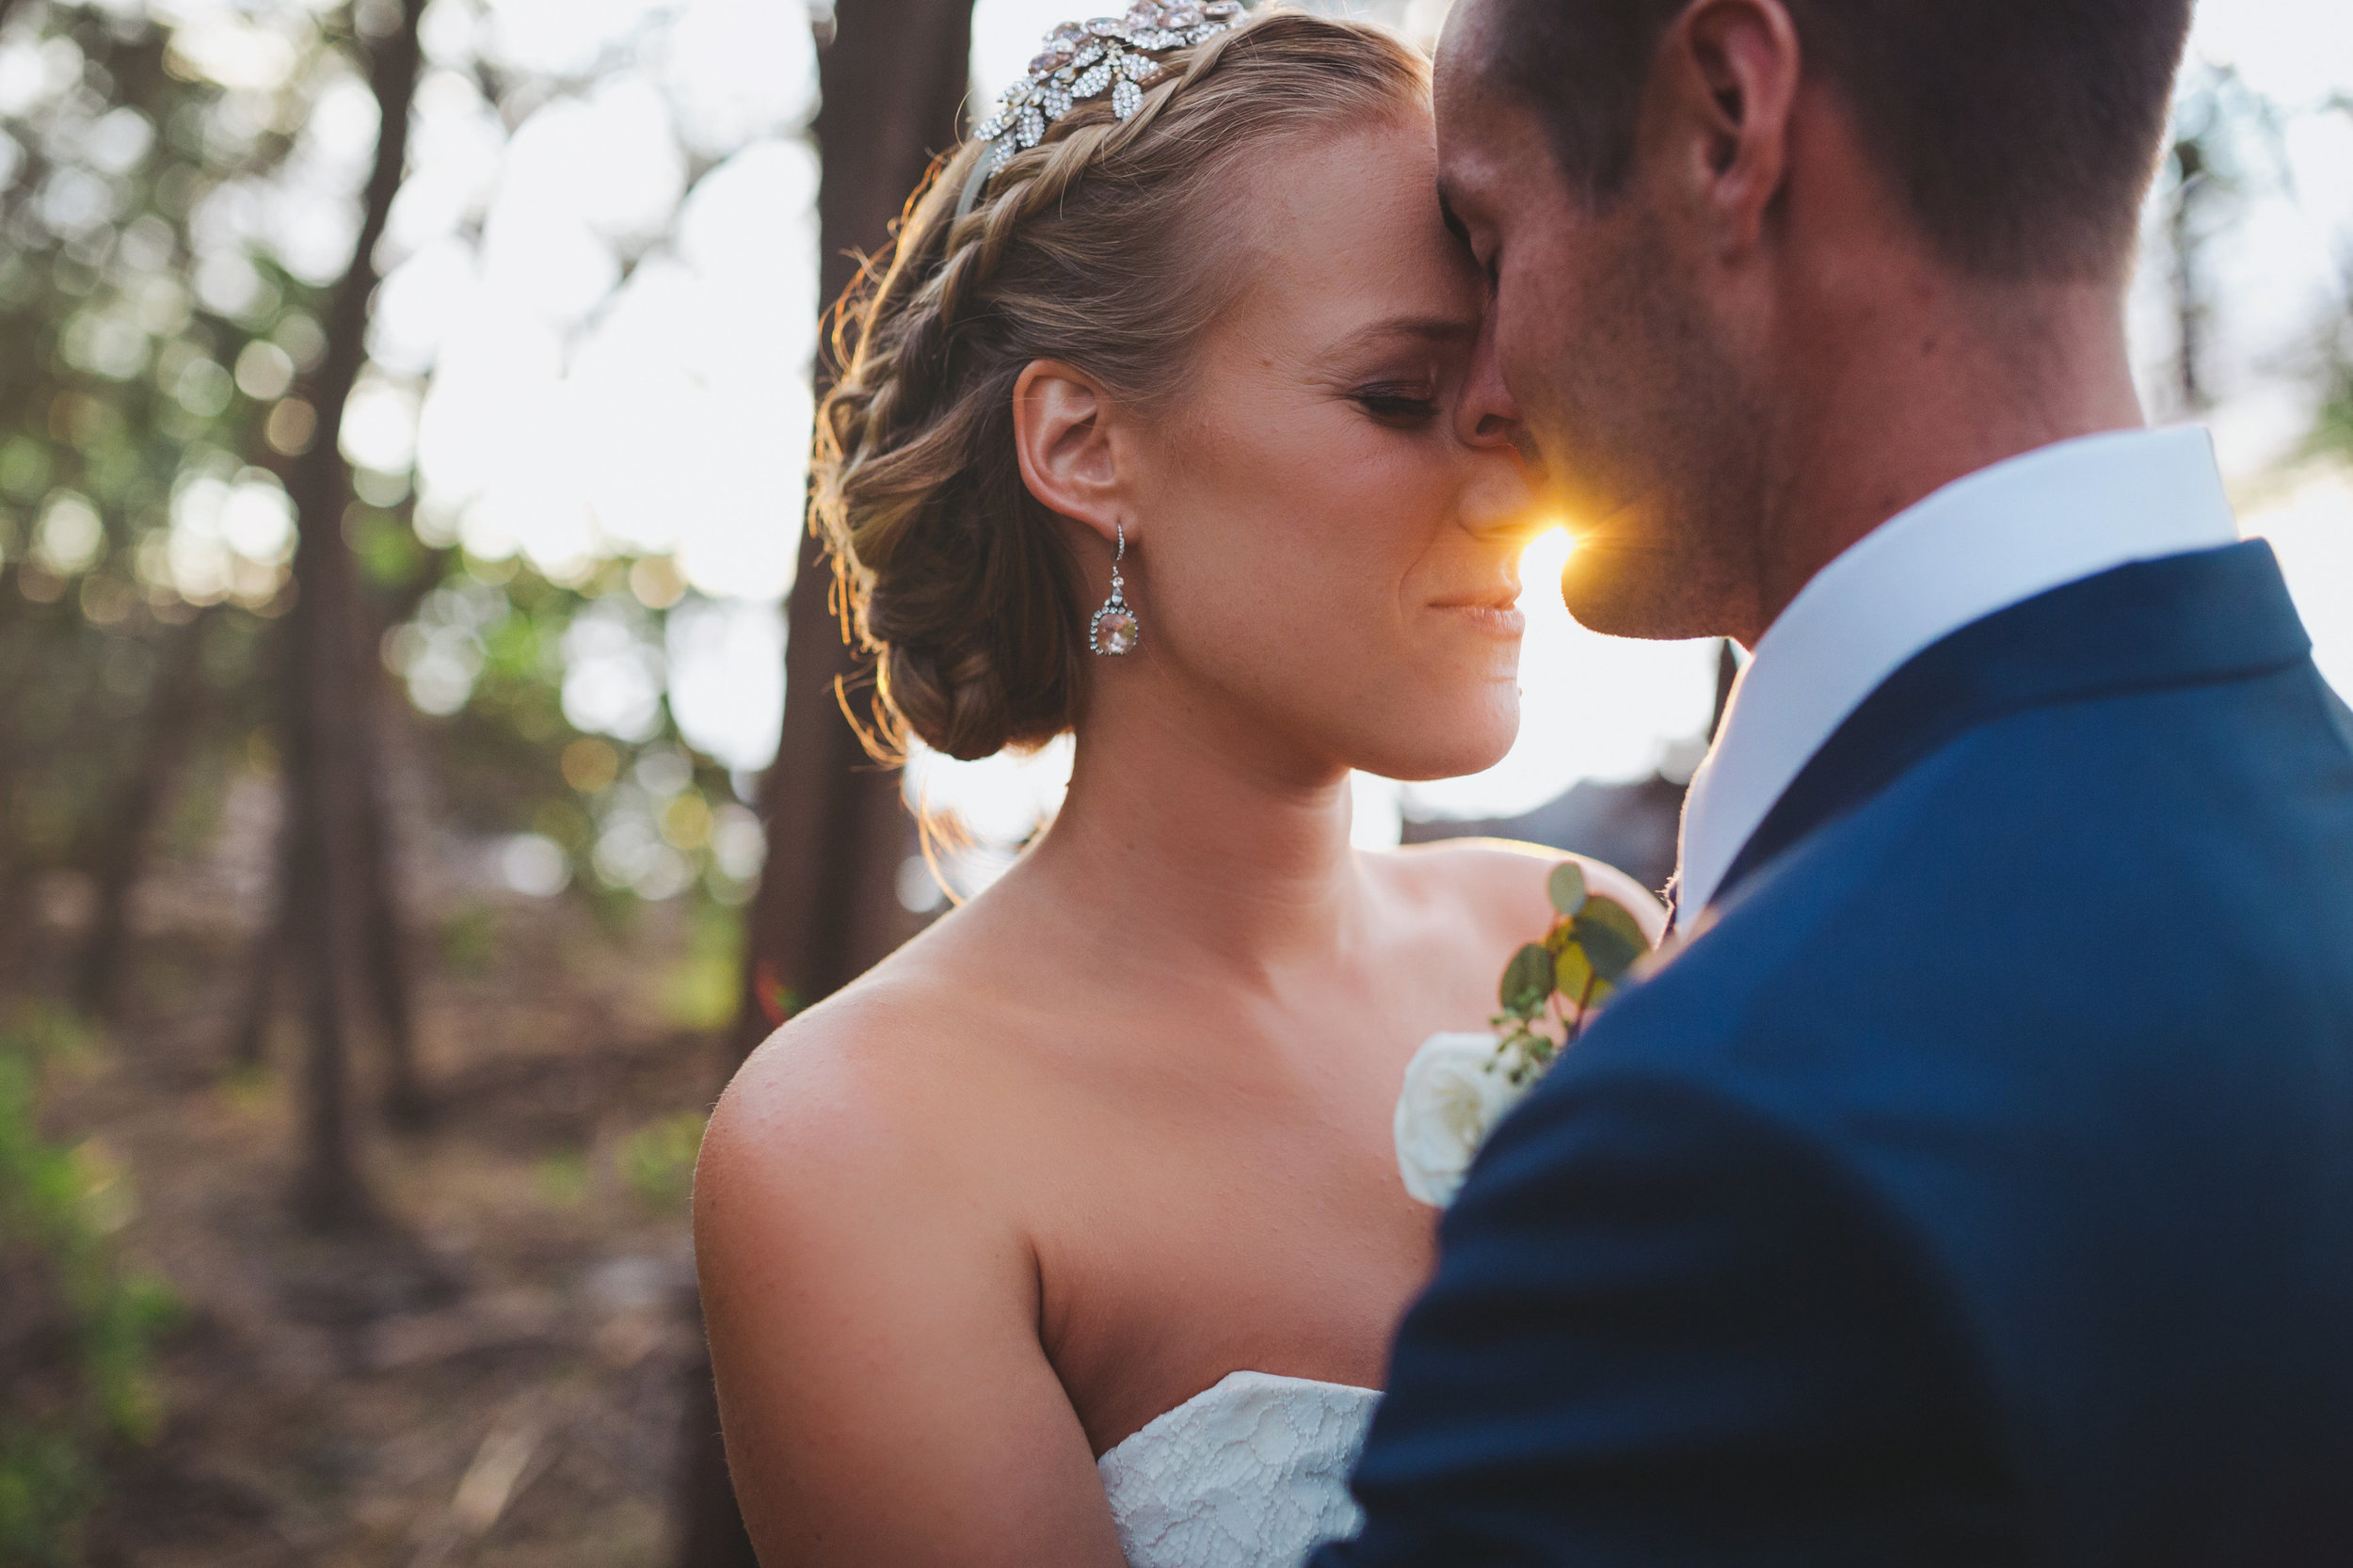 """From the moment I first stepped foot in the shop,to the day I picked up my dress, finding """"the one"""" could not have been a more lovely experience.Thank you for making me feel like the most special bride, it was everything I could have imagined. ~ Barb"""